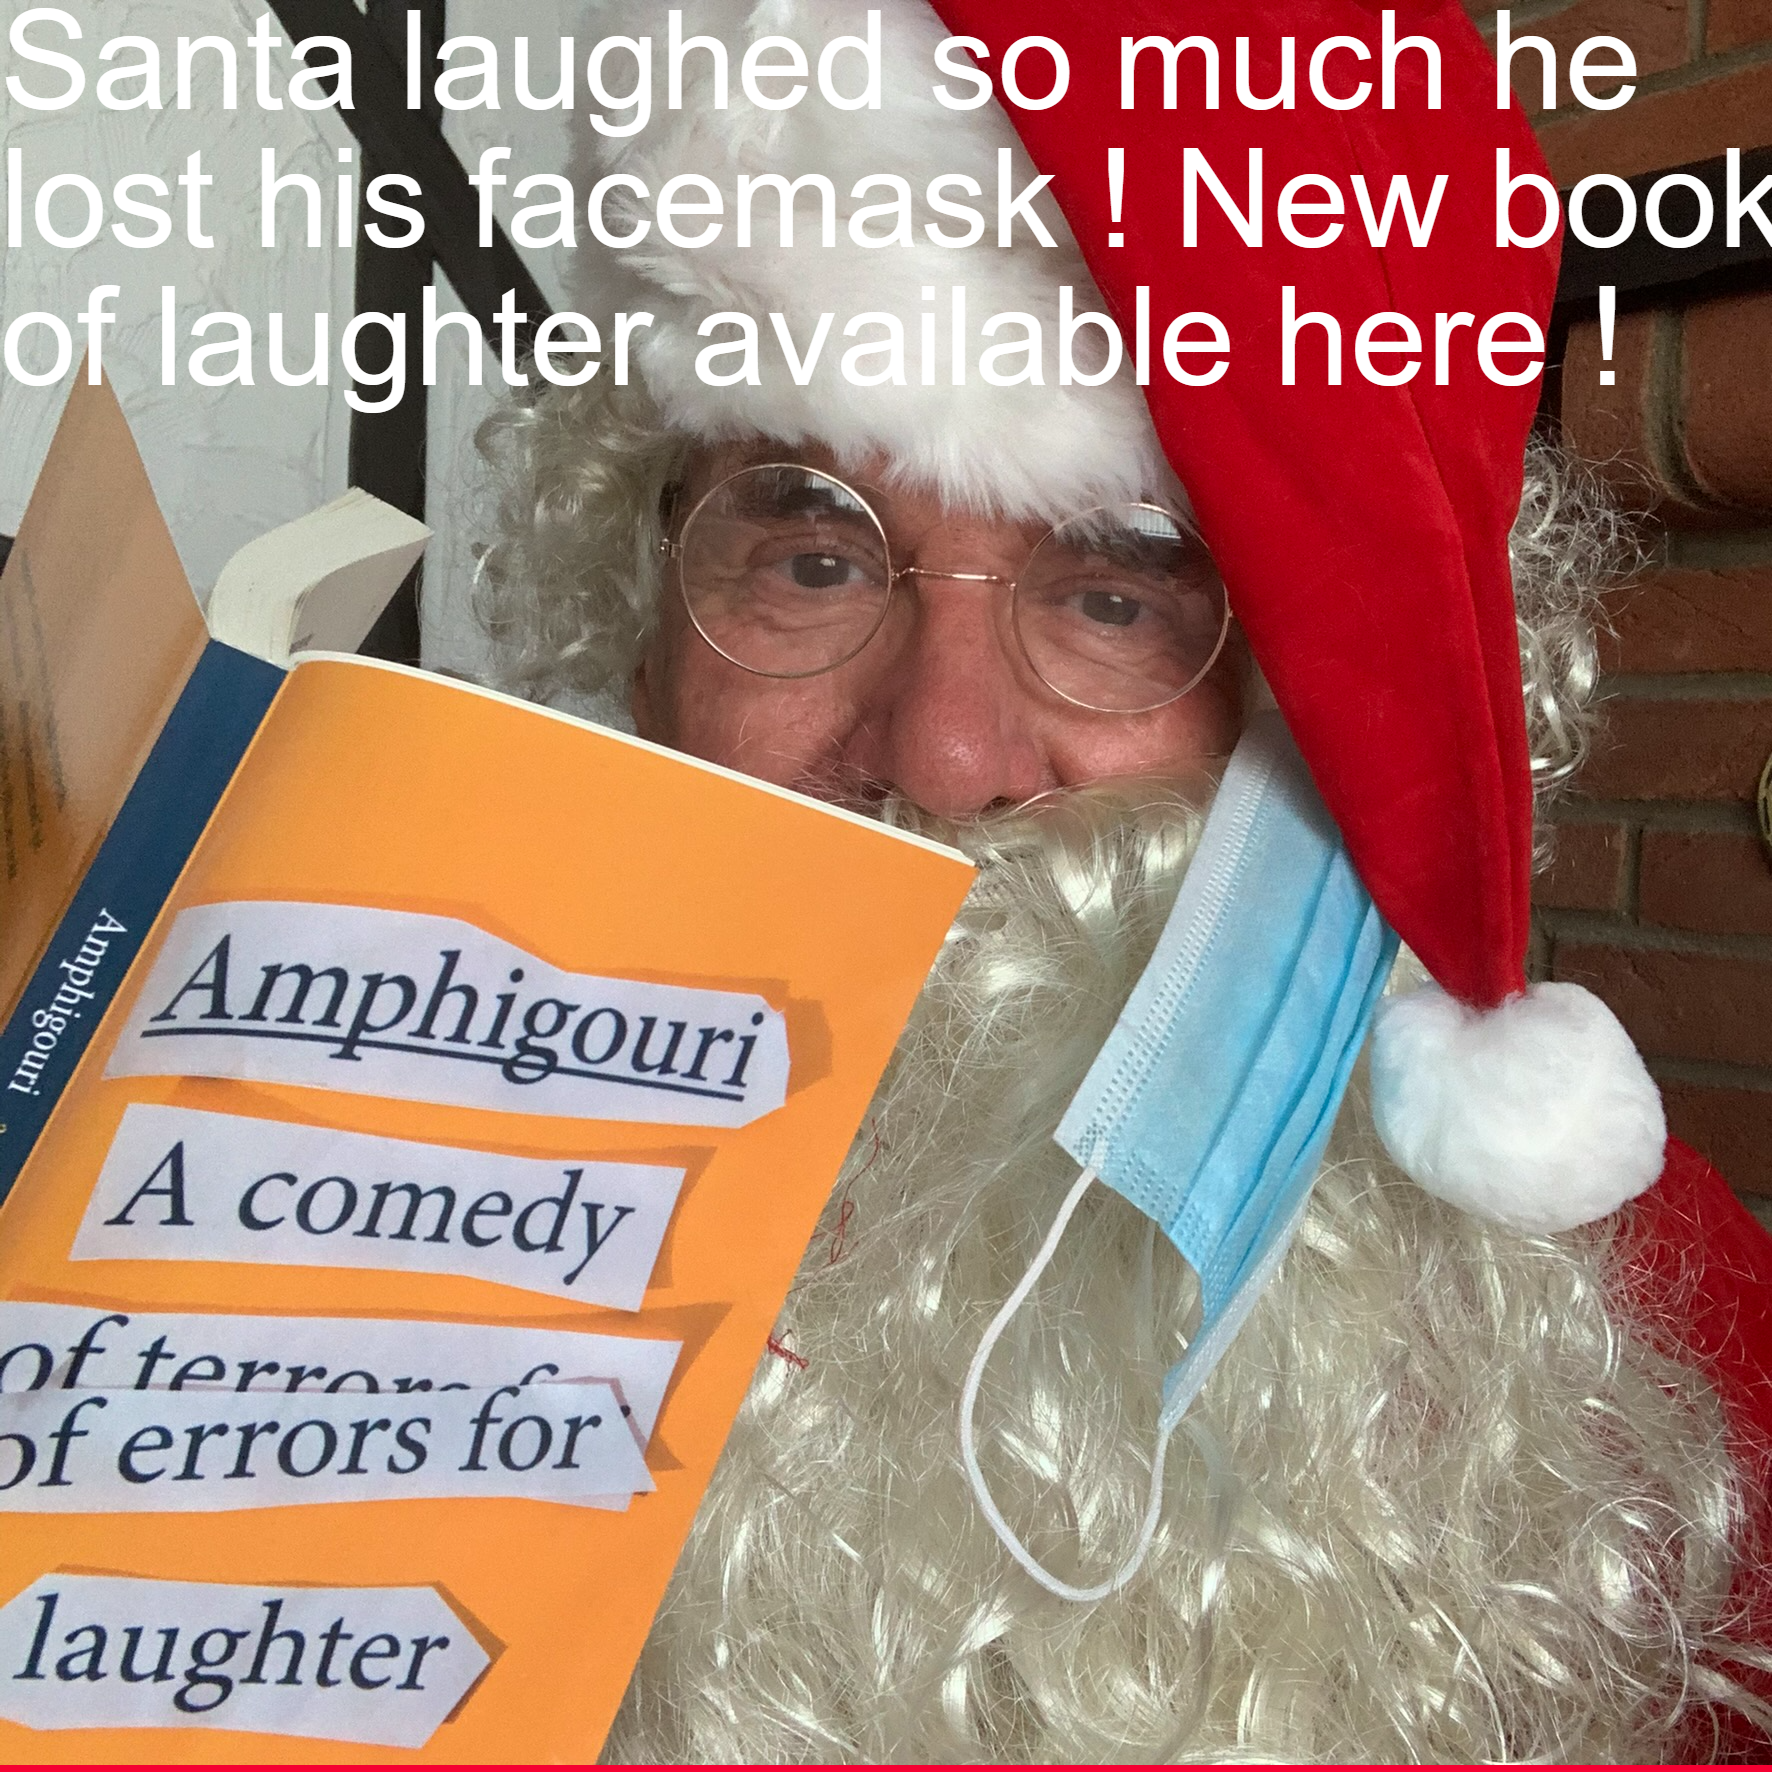 Santa laughed so much he lost his facemask - new book of laugher @ £14.99